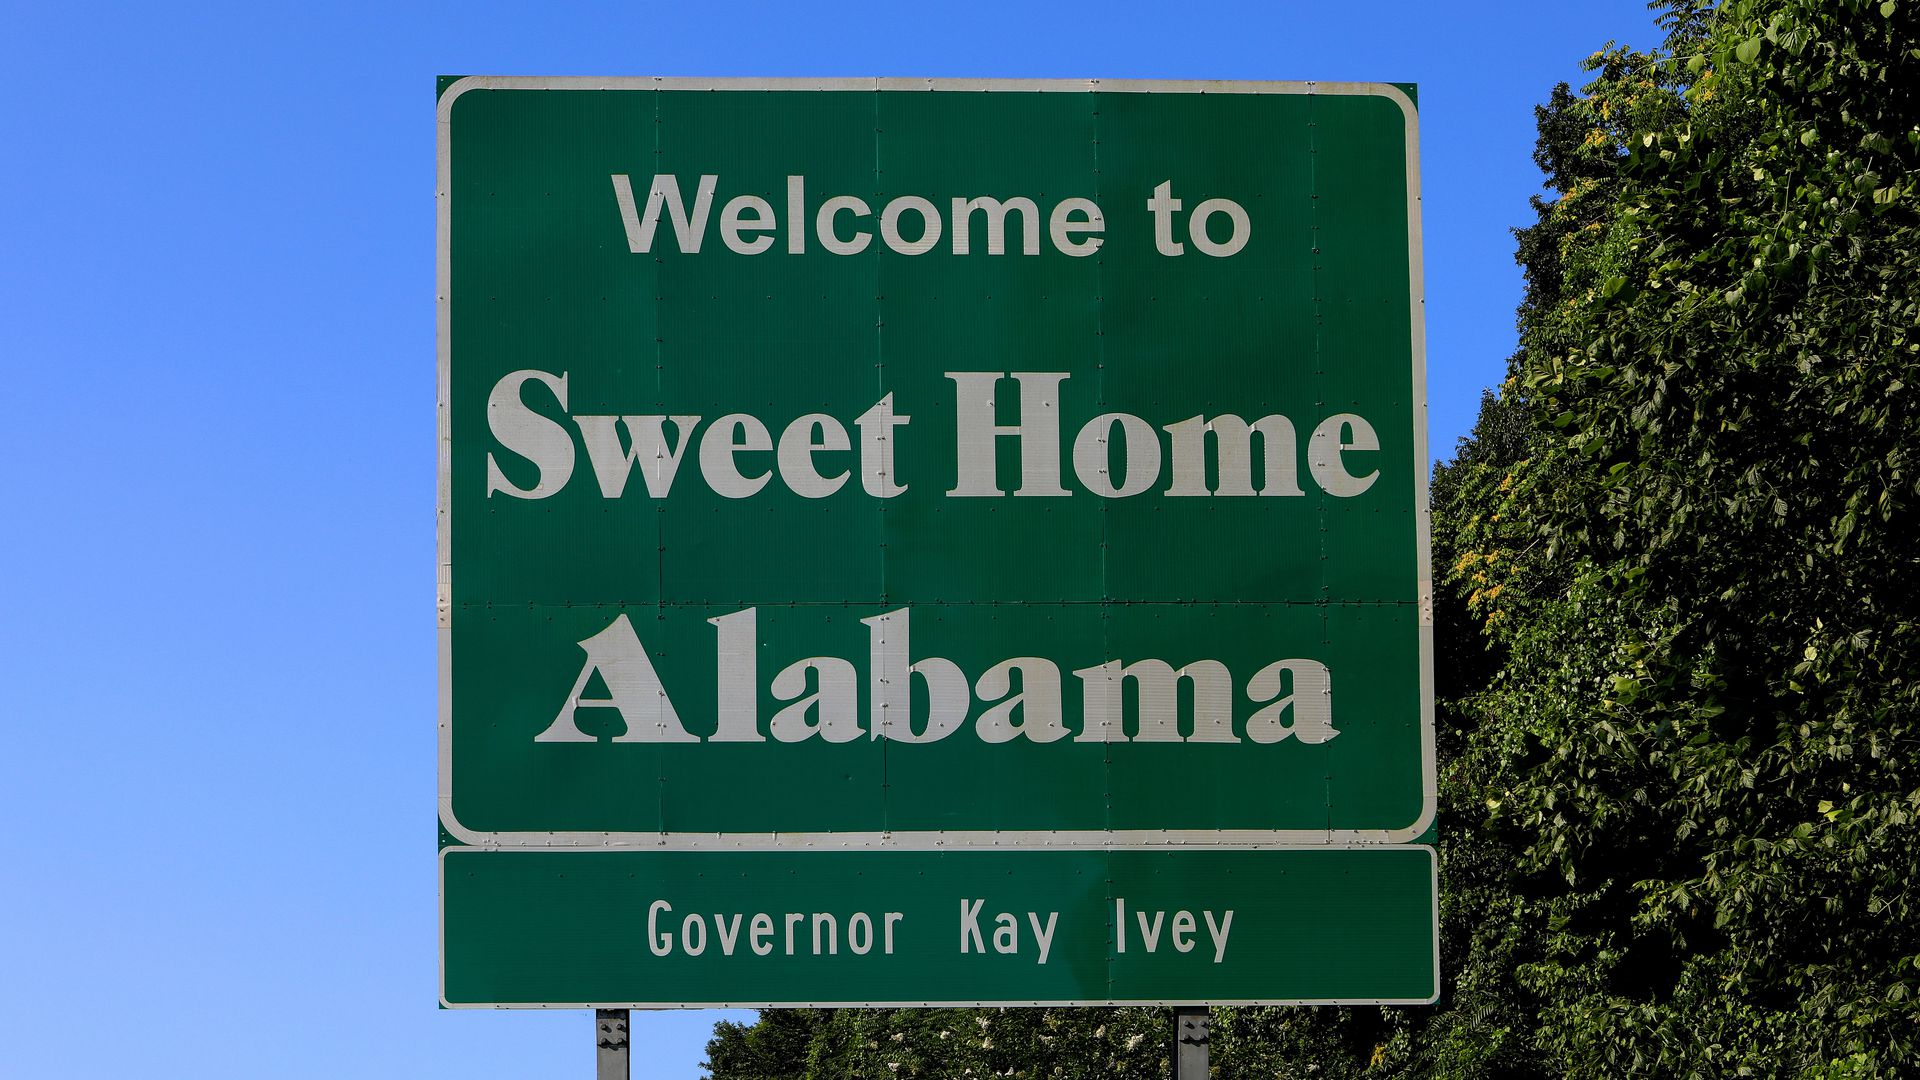 Alabama's GOP governor issues statewide mask mandate - Axios